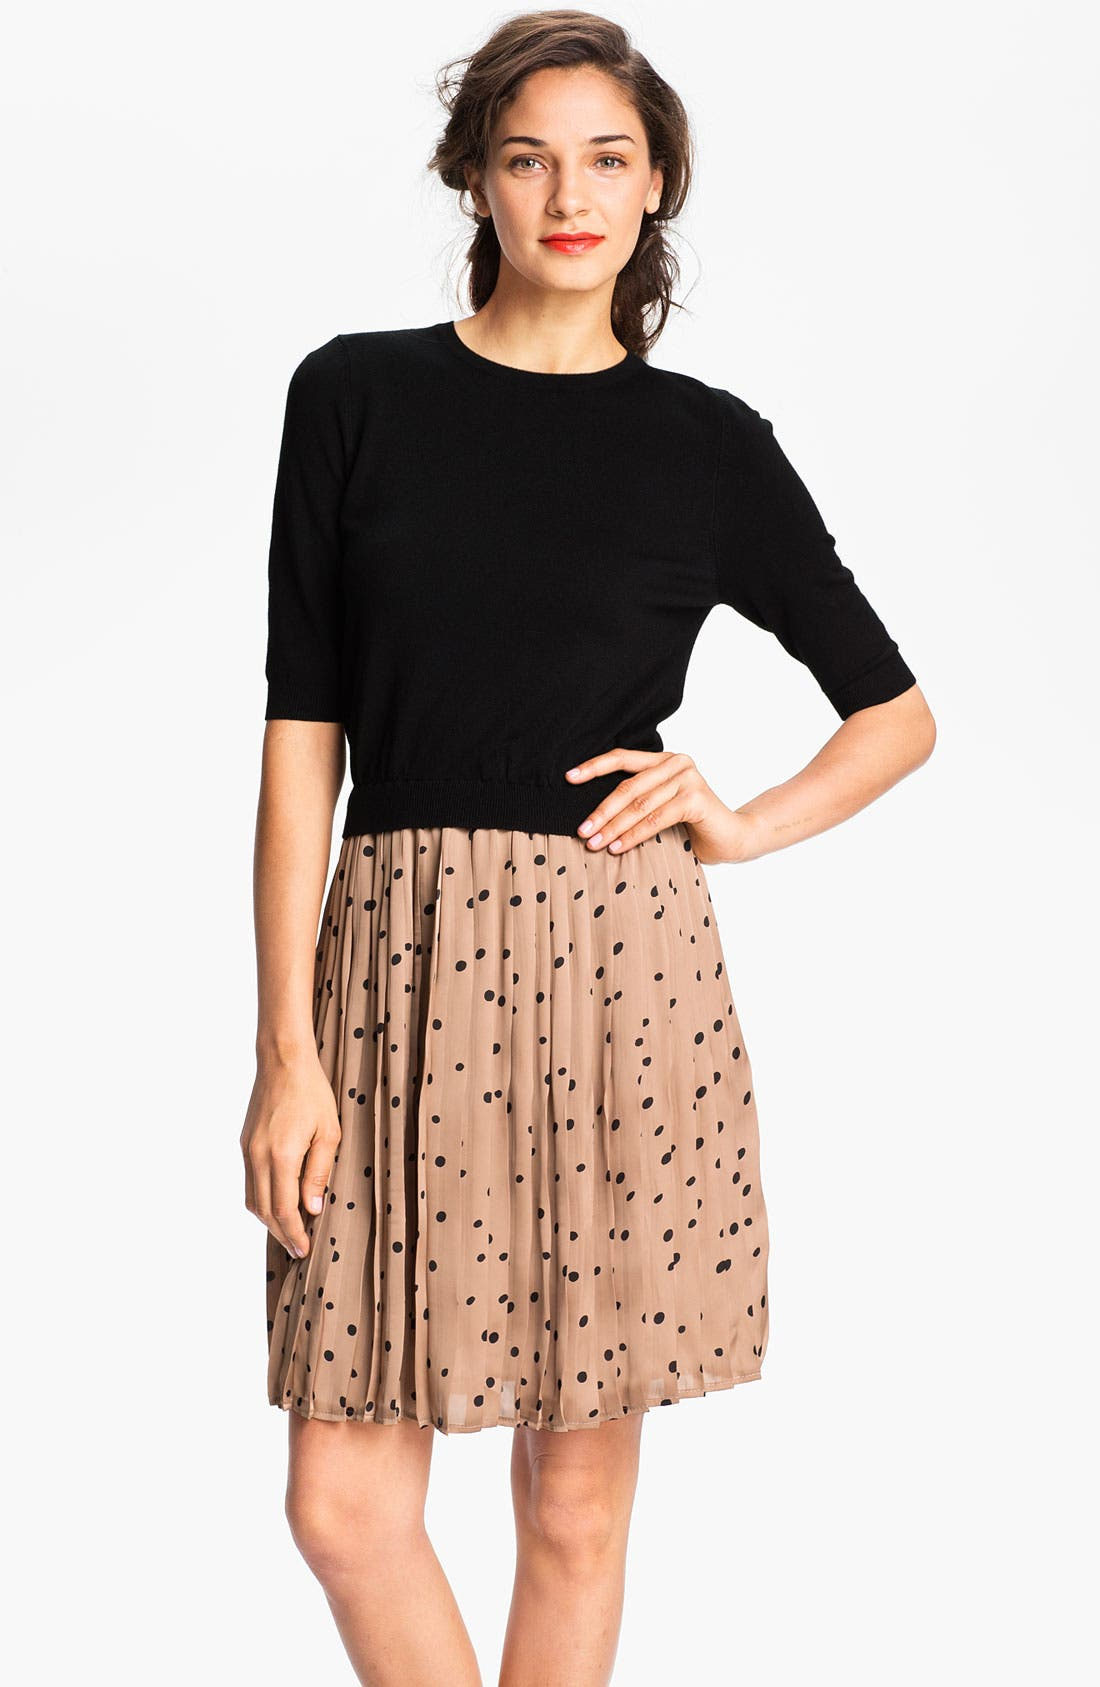 Main Image - Taylor Dresses Polka Dot Skirt Sweater Dress